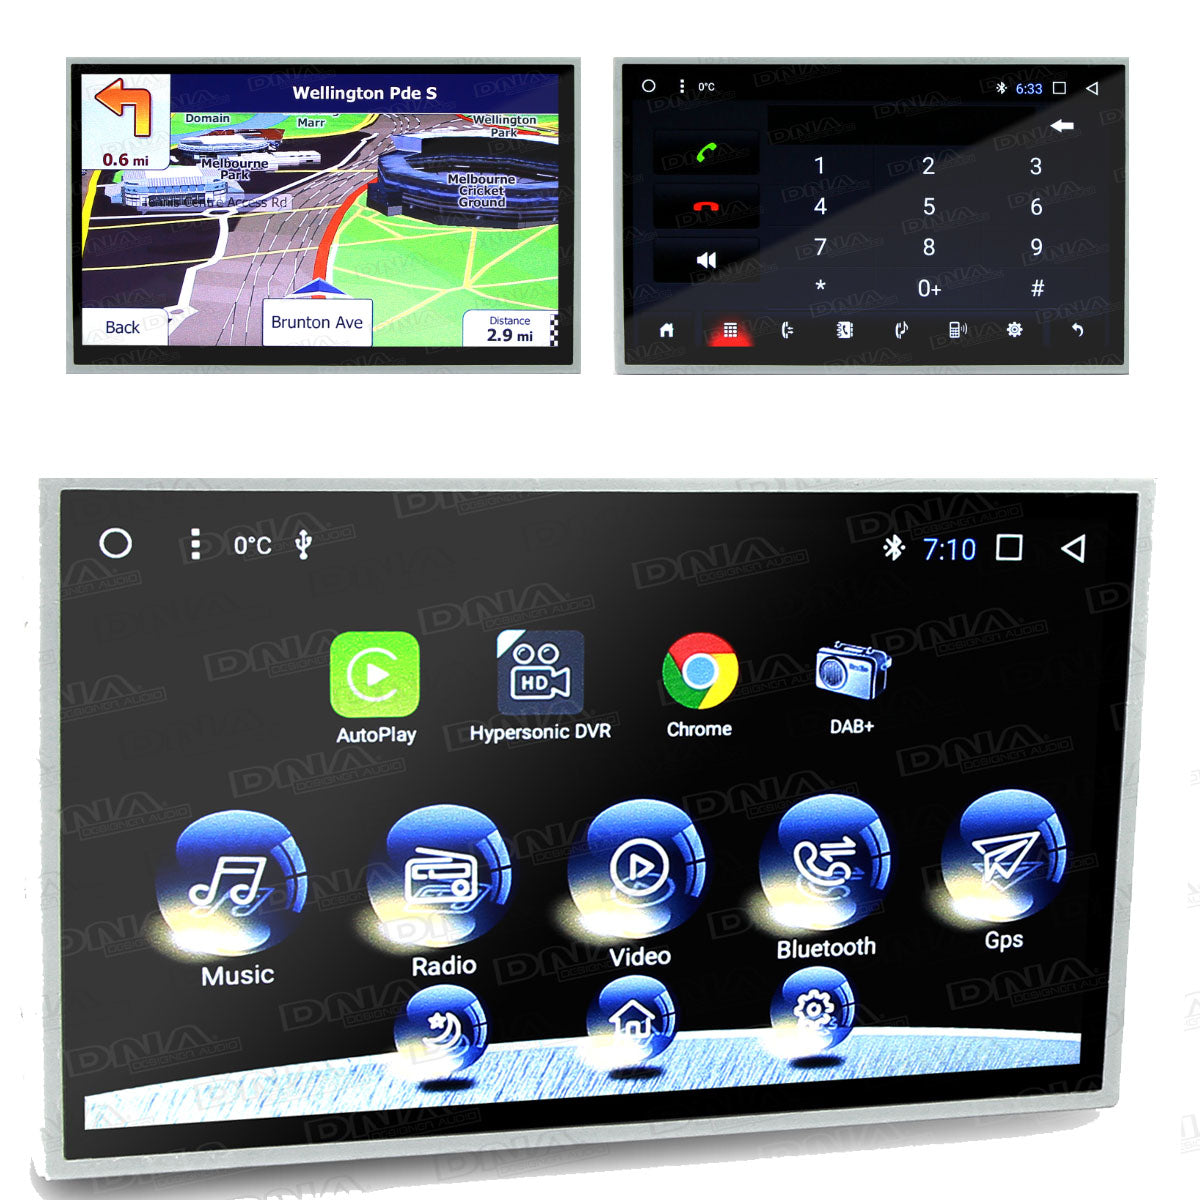 Kayhan 8 Inch Screen & DVD Head Unit To Suit Ford Falcon FG Series 2